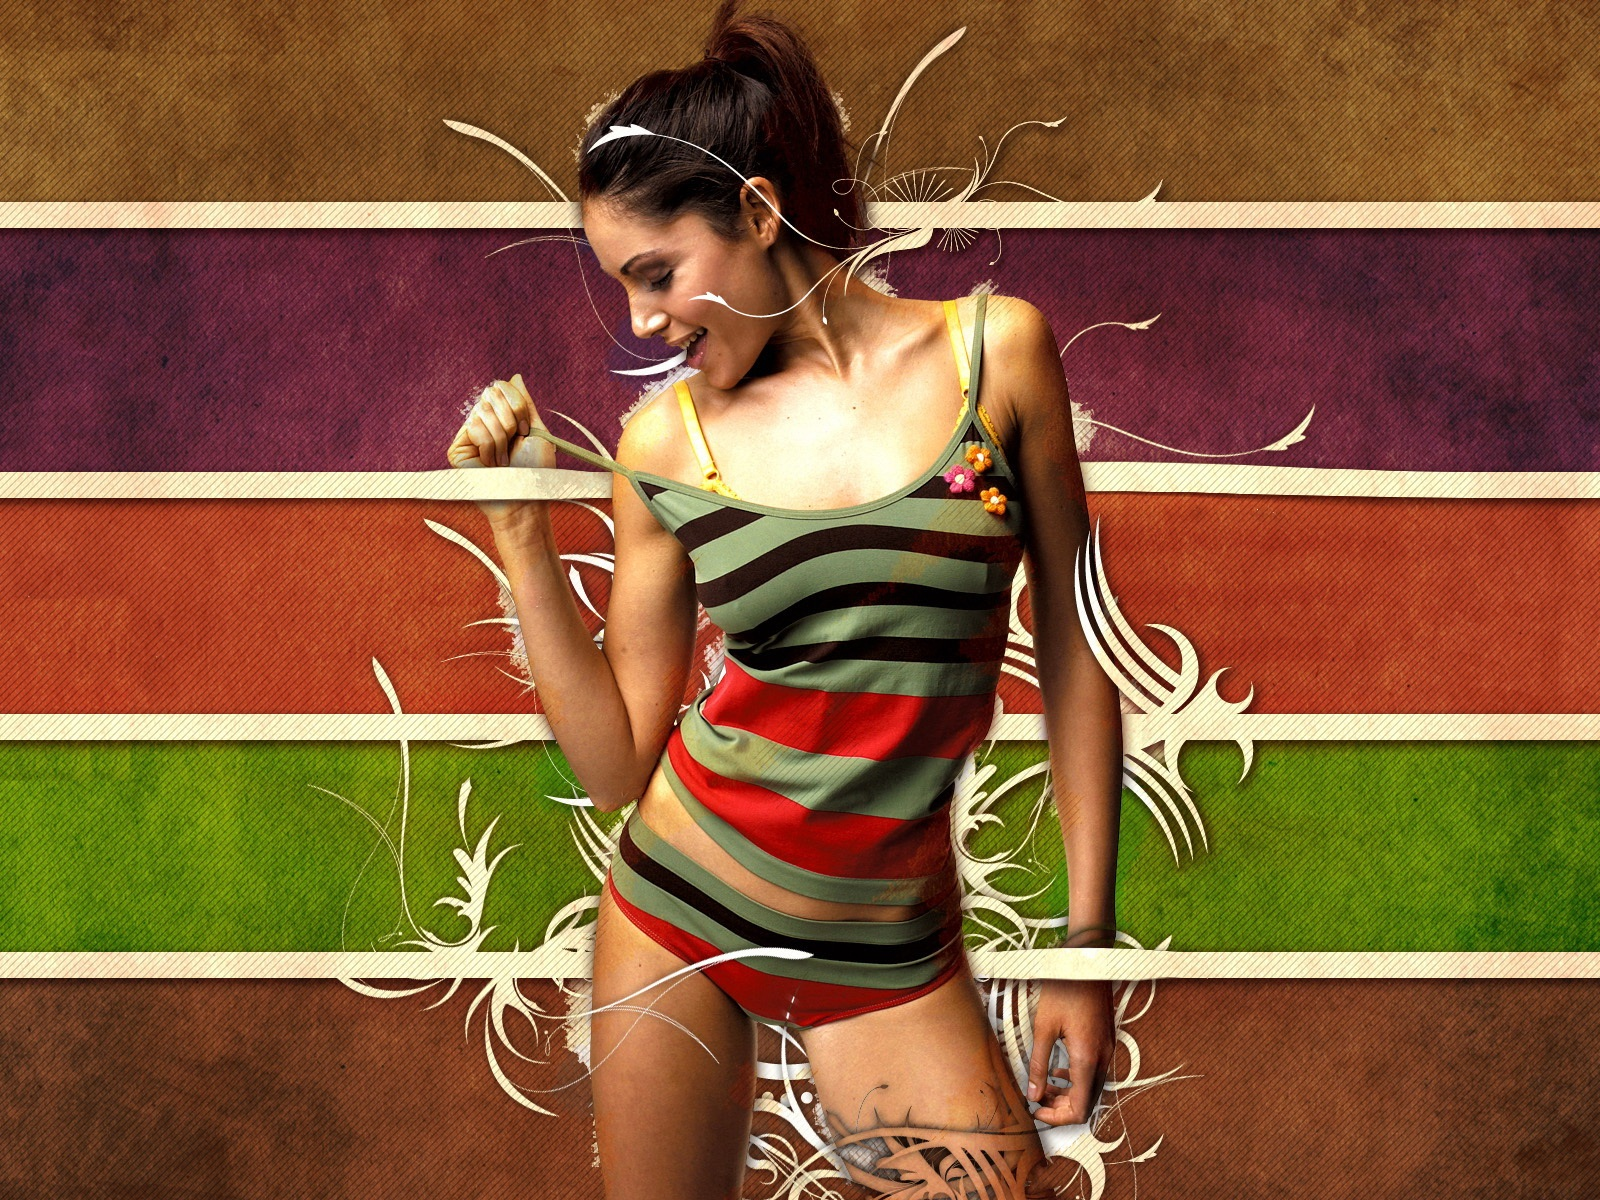 SKYme - Local News: Full Girls Wallpapers